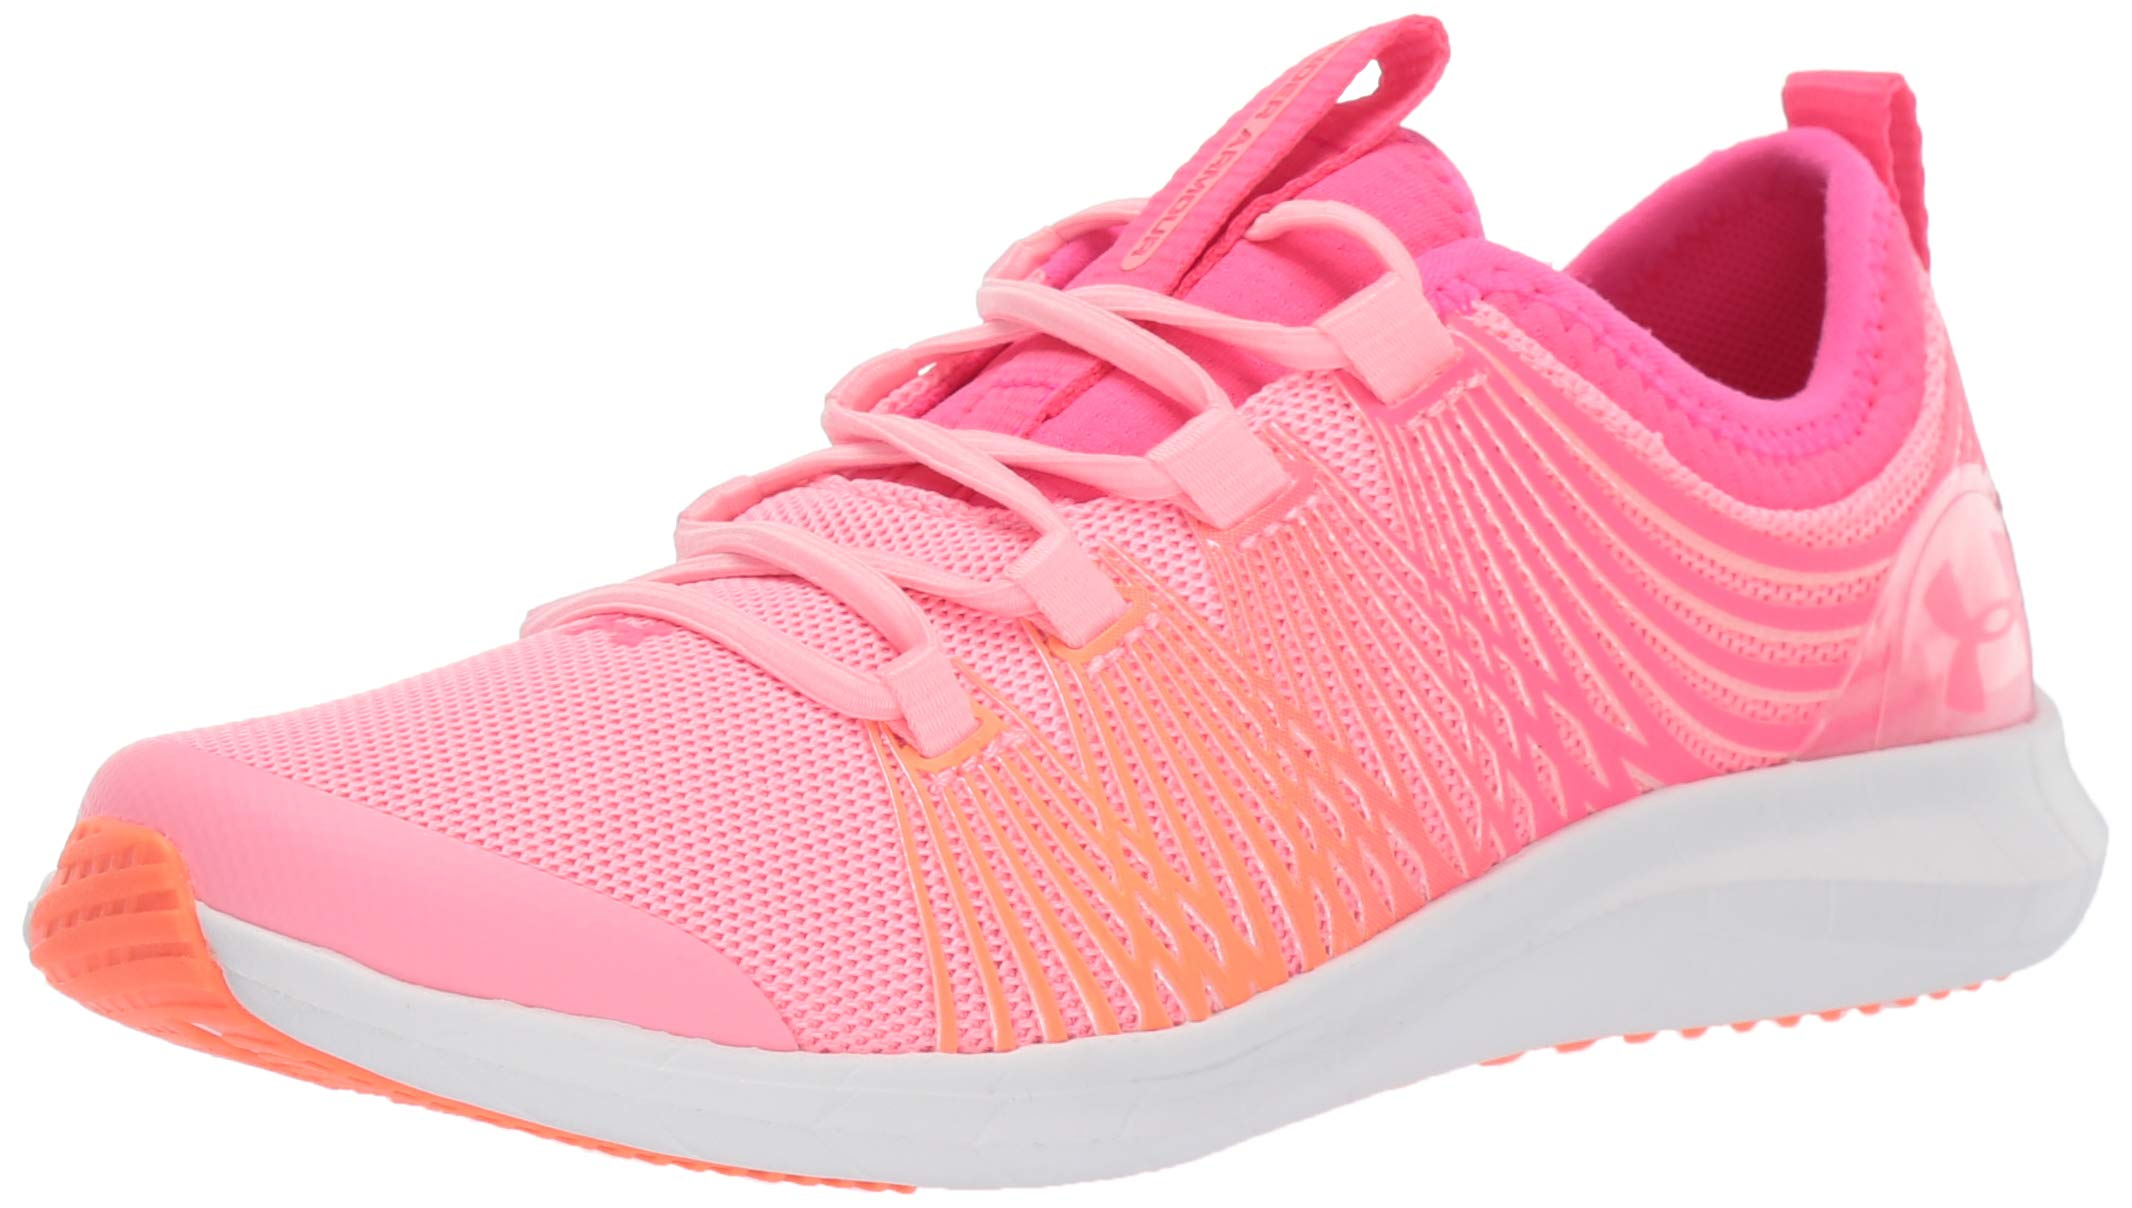 Under Armour Unisex Pre School Infinity 2 Alternate Lace Sneaker, Pop Pink (600)/Pinkadelic, 2.5 M US Little Kid